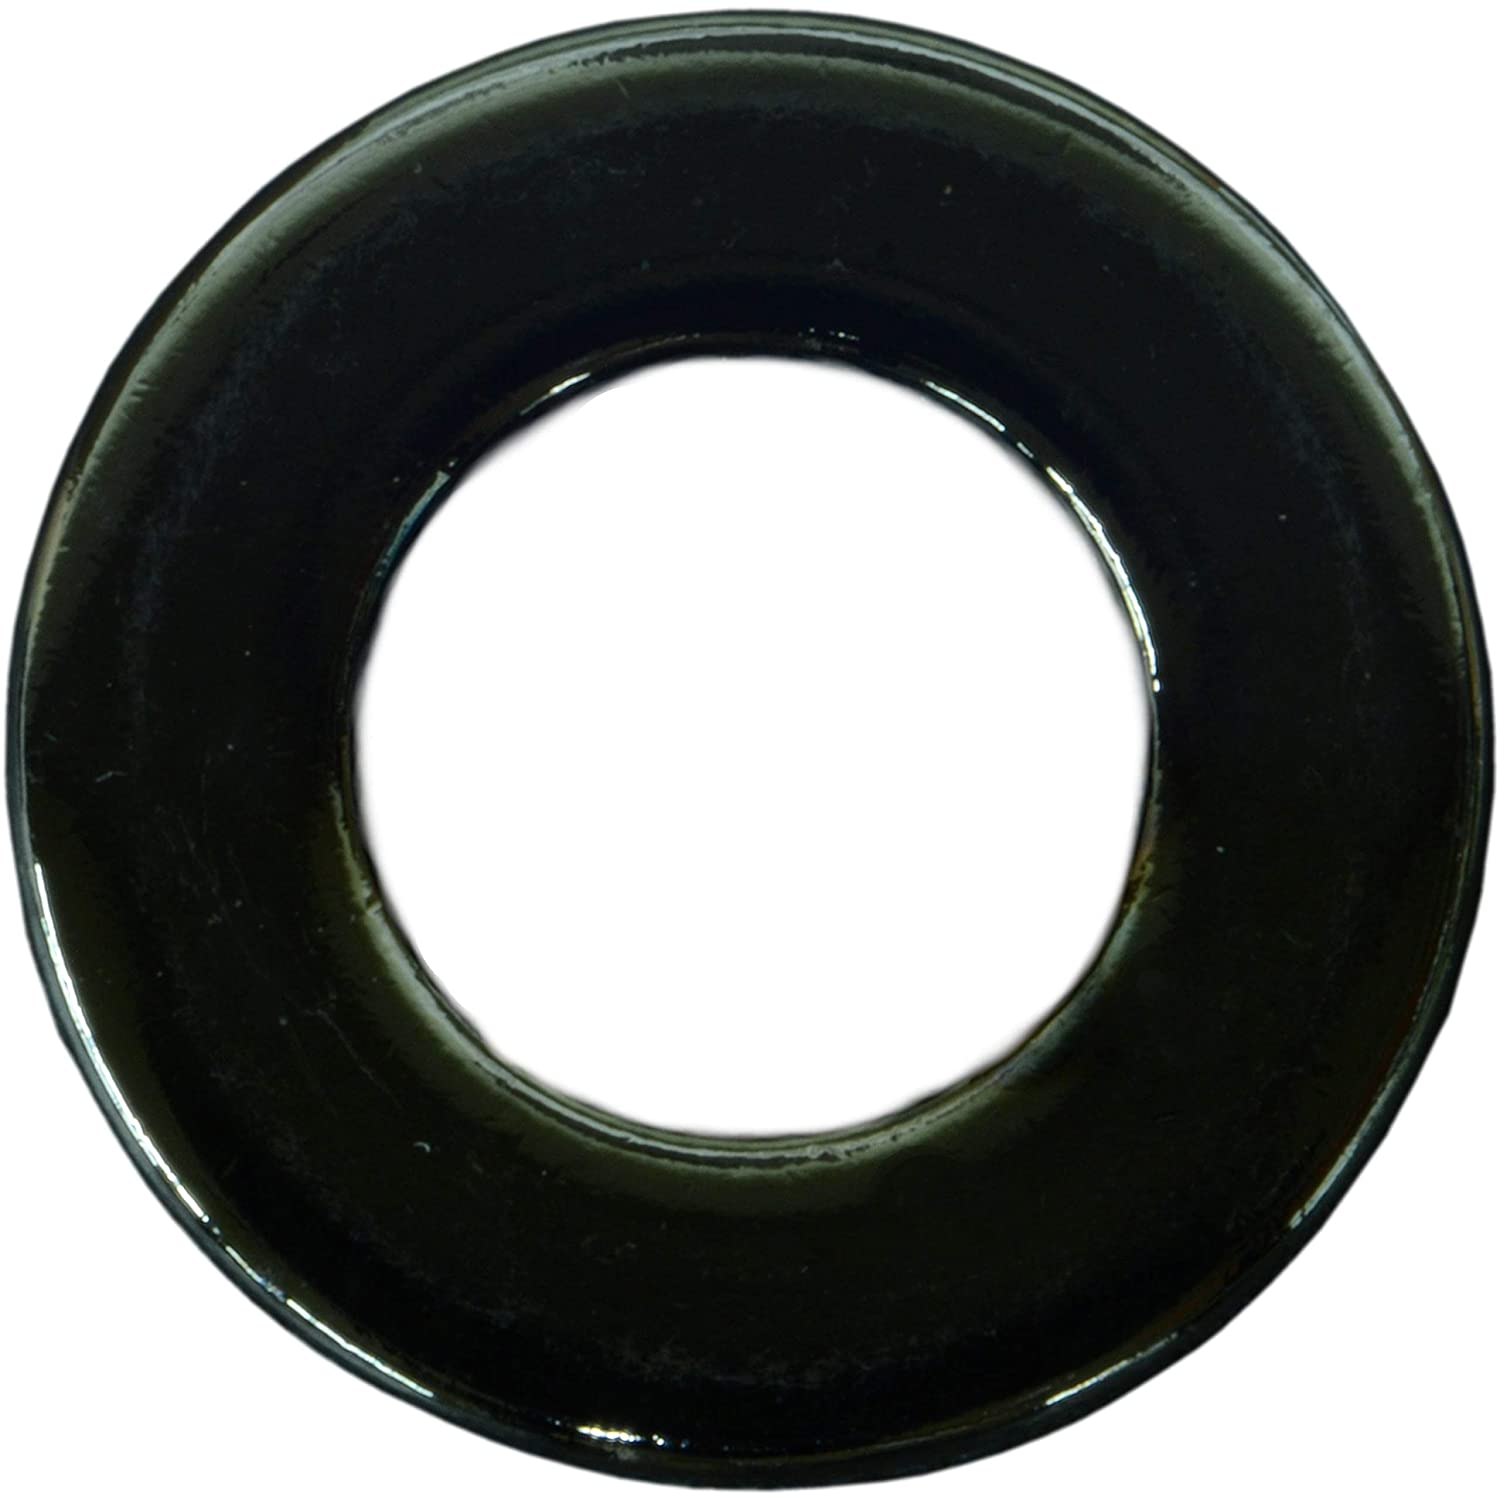 1//4 Piece-15 Midwest Fastener Corp Hard-to-Find Fastener 014973435622 AN Washers